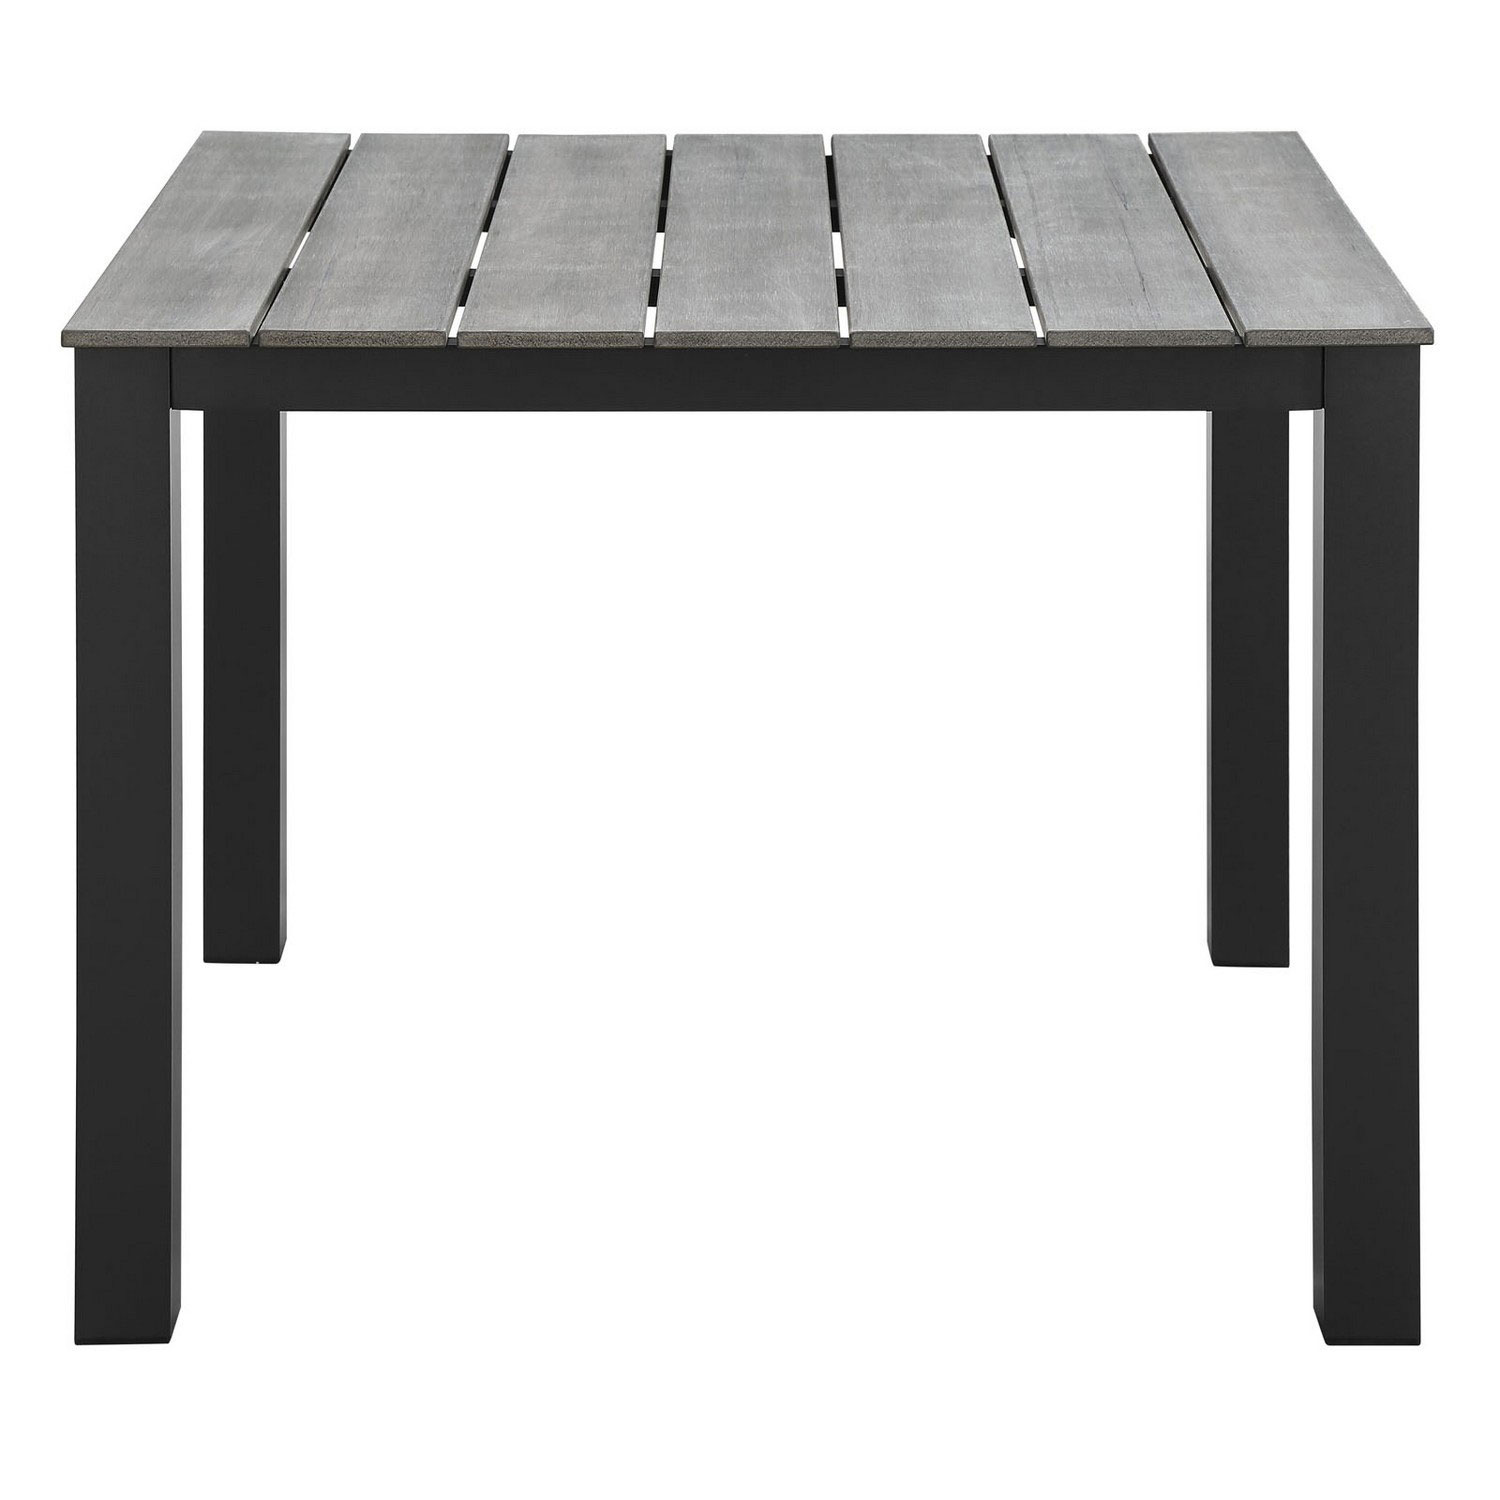 Modway Maine 40 Outdoor Patio Dining Table - Brown/Gray